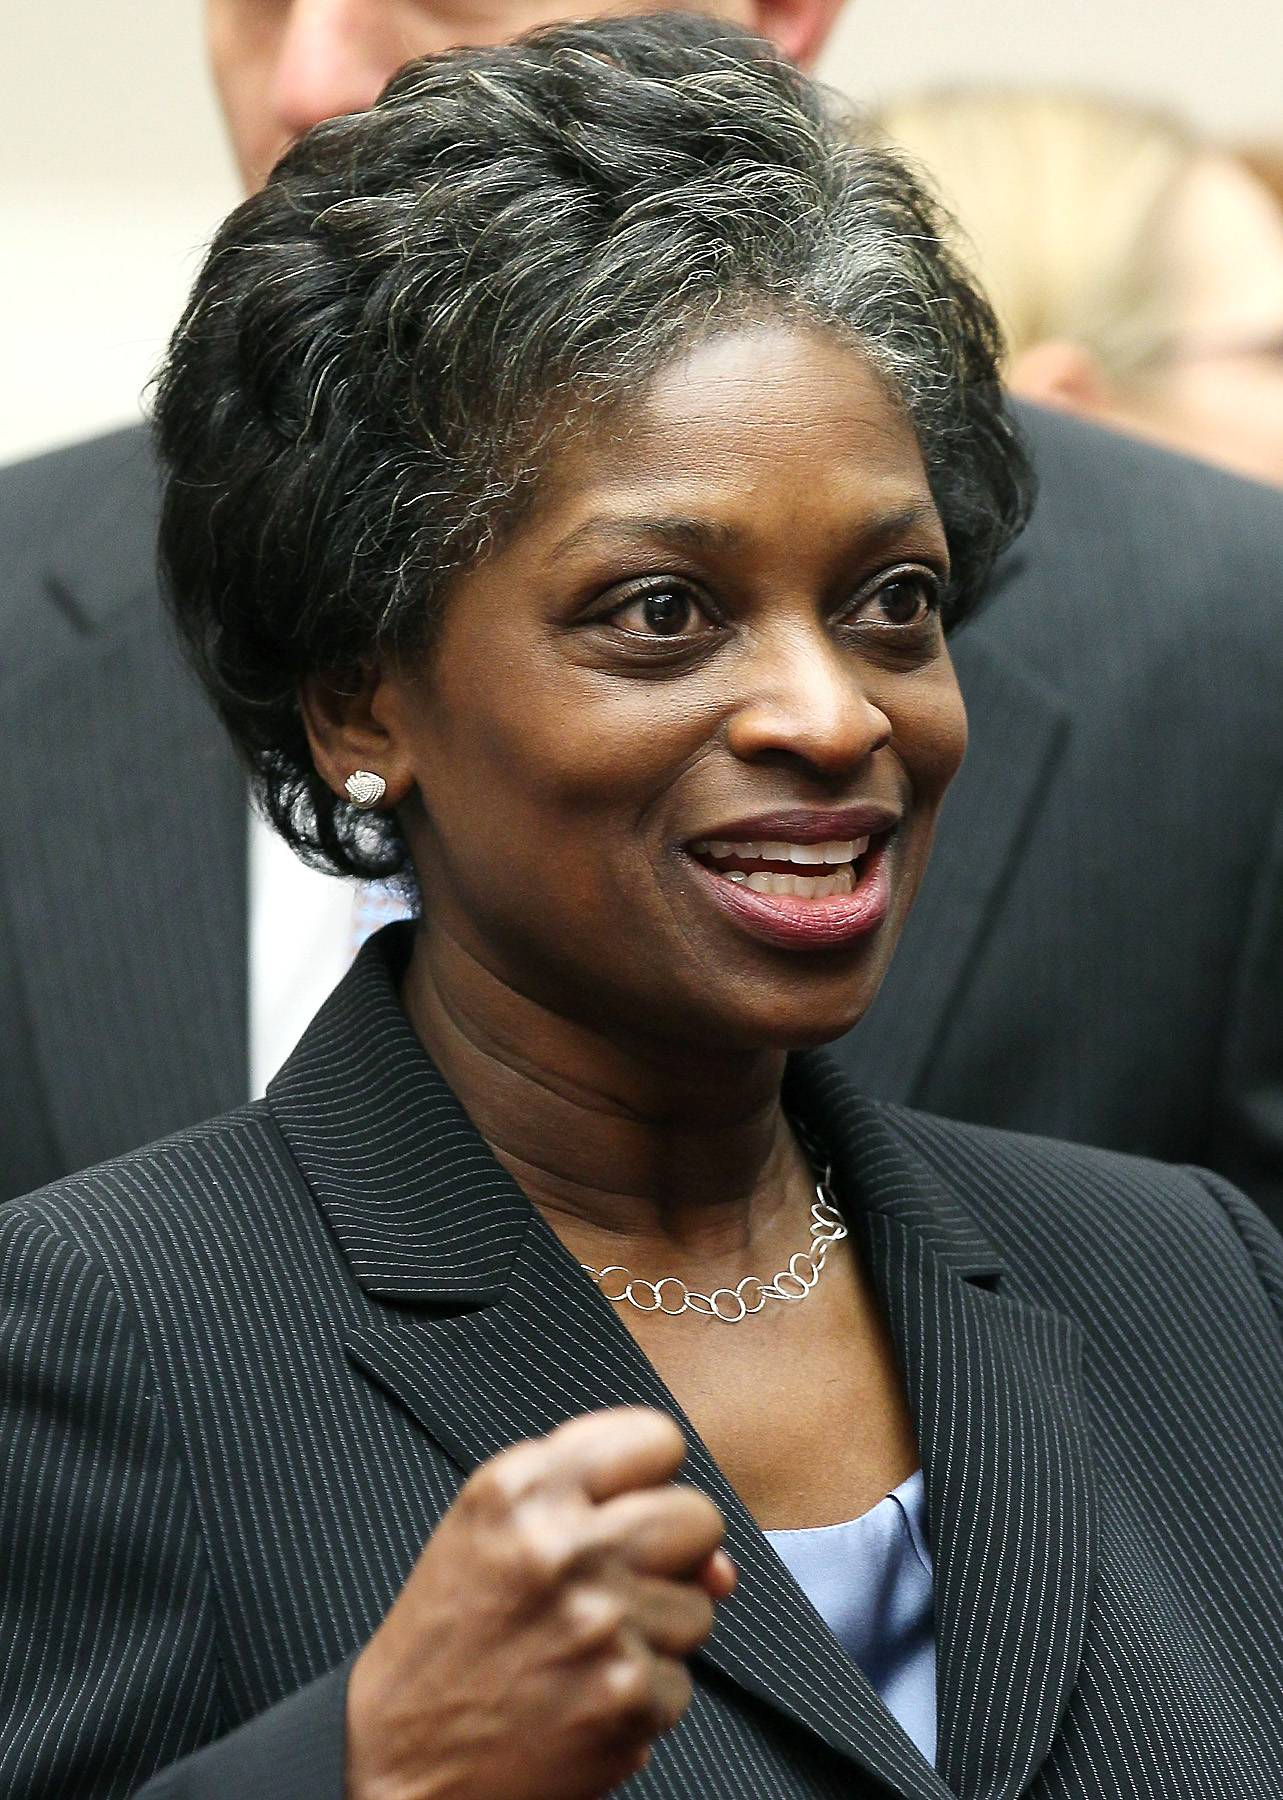 Mignon Clyburn - Mignon Clyburn is a Democratic member of the Federal Communications Commission, which has regulatory power over the nation's most important media, communications and technology companies. When FCC chairman JuliusGenachowski steps down in June, rumor has it, Clyburn, daughter of the House's third-top Democrat Rep. James Clyburn, could be named acting commissioner.  (Photo: Mark Wilson/Getty Images)